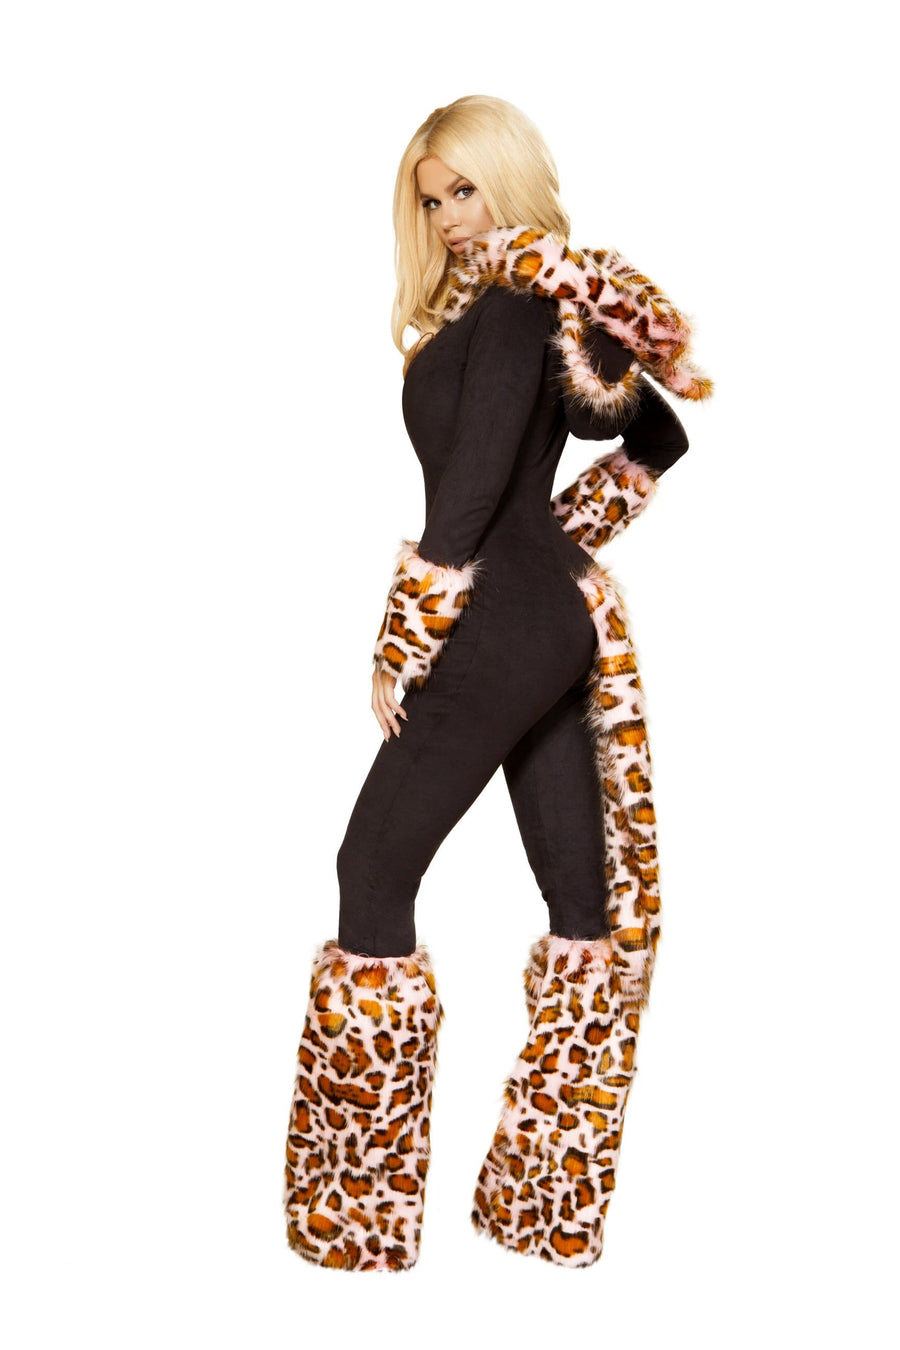 Roma Small / Black Pink Leopard Costume, Roma 4873 SHC-4873-S-R Apparel & Accessories > Costumes & Accessories > Costumes